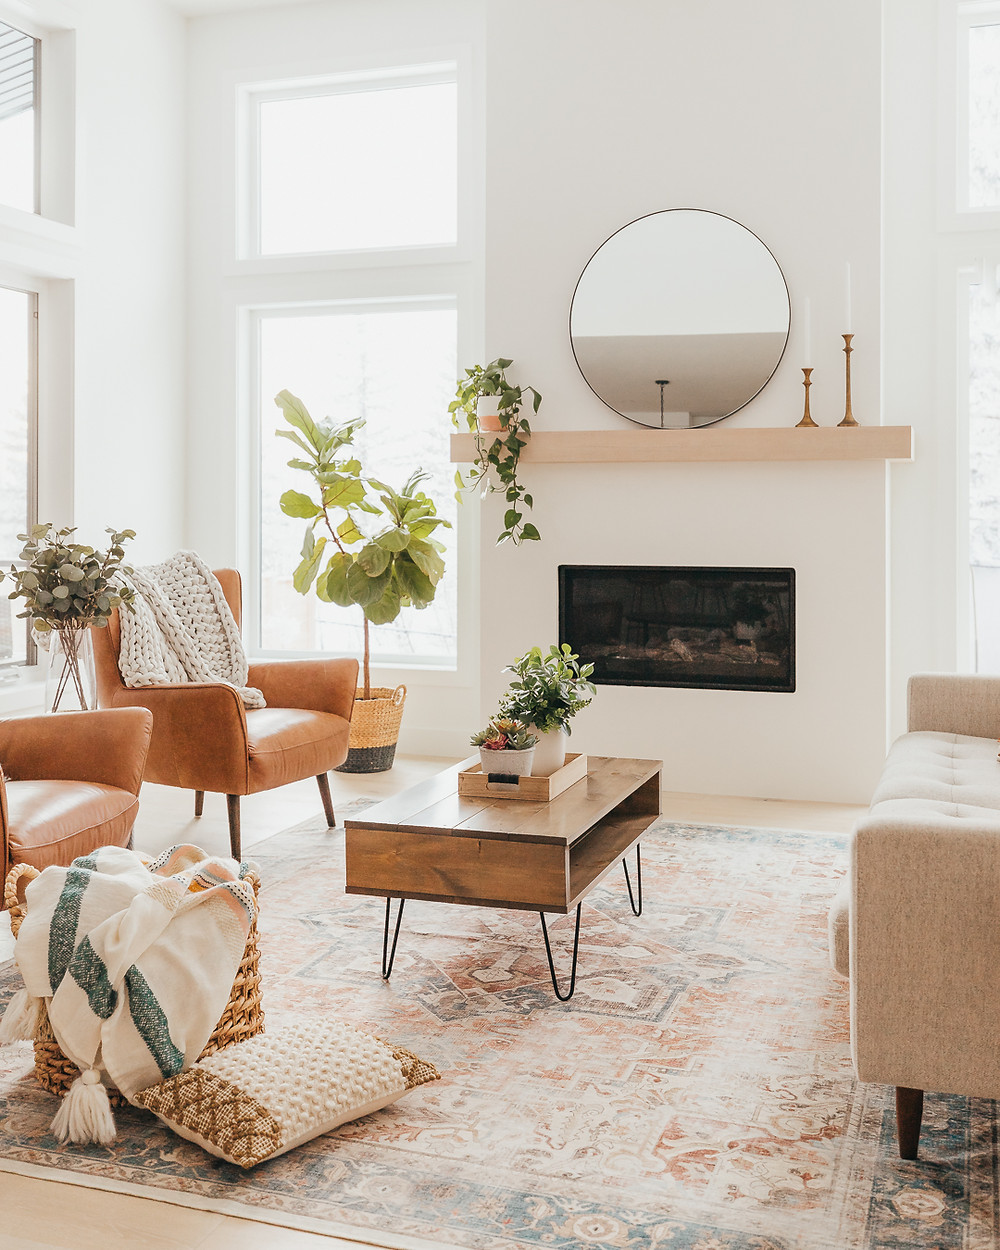 Two brown leather armchairs with chunky knit throw basket on floor with stripped blanket and textured throw pillow wood mantle with two candlesticks round black mirror hanging plant fiddle leaf fig in basket rectangular wood coffee table with black wood accents